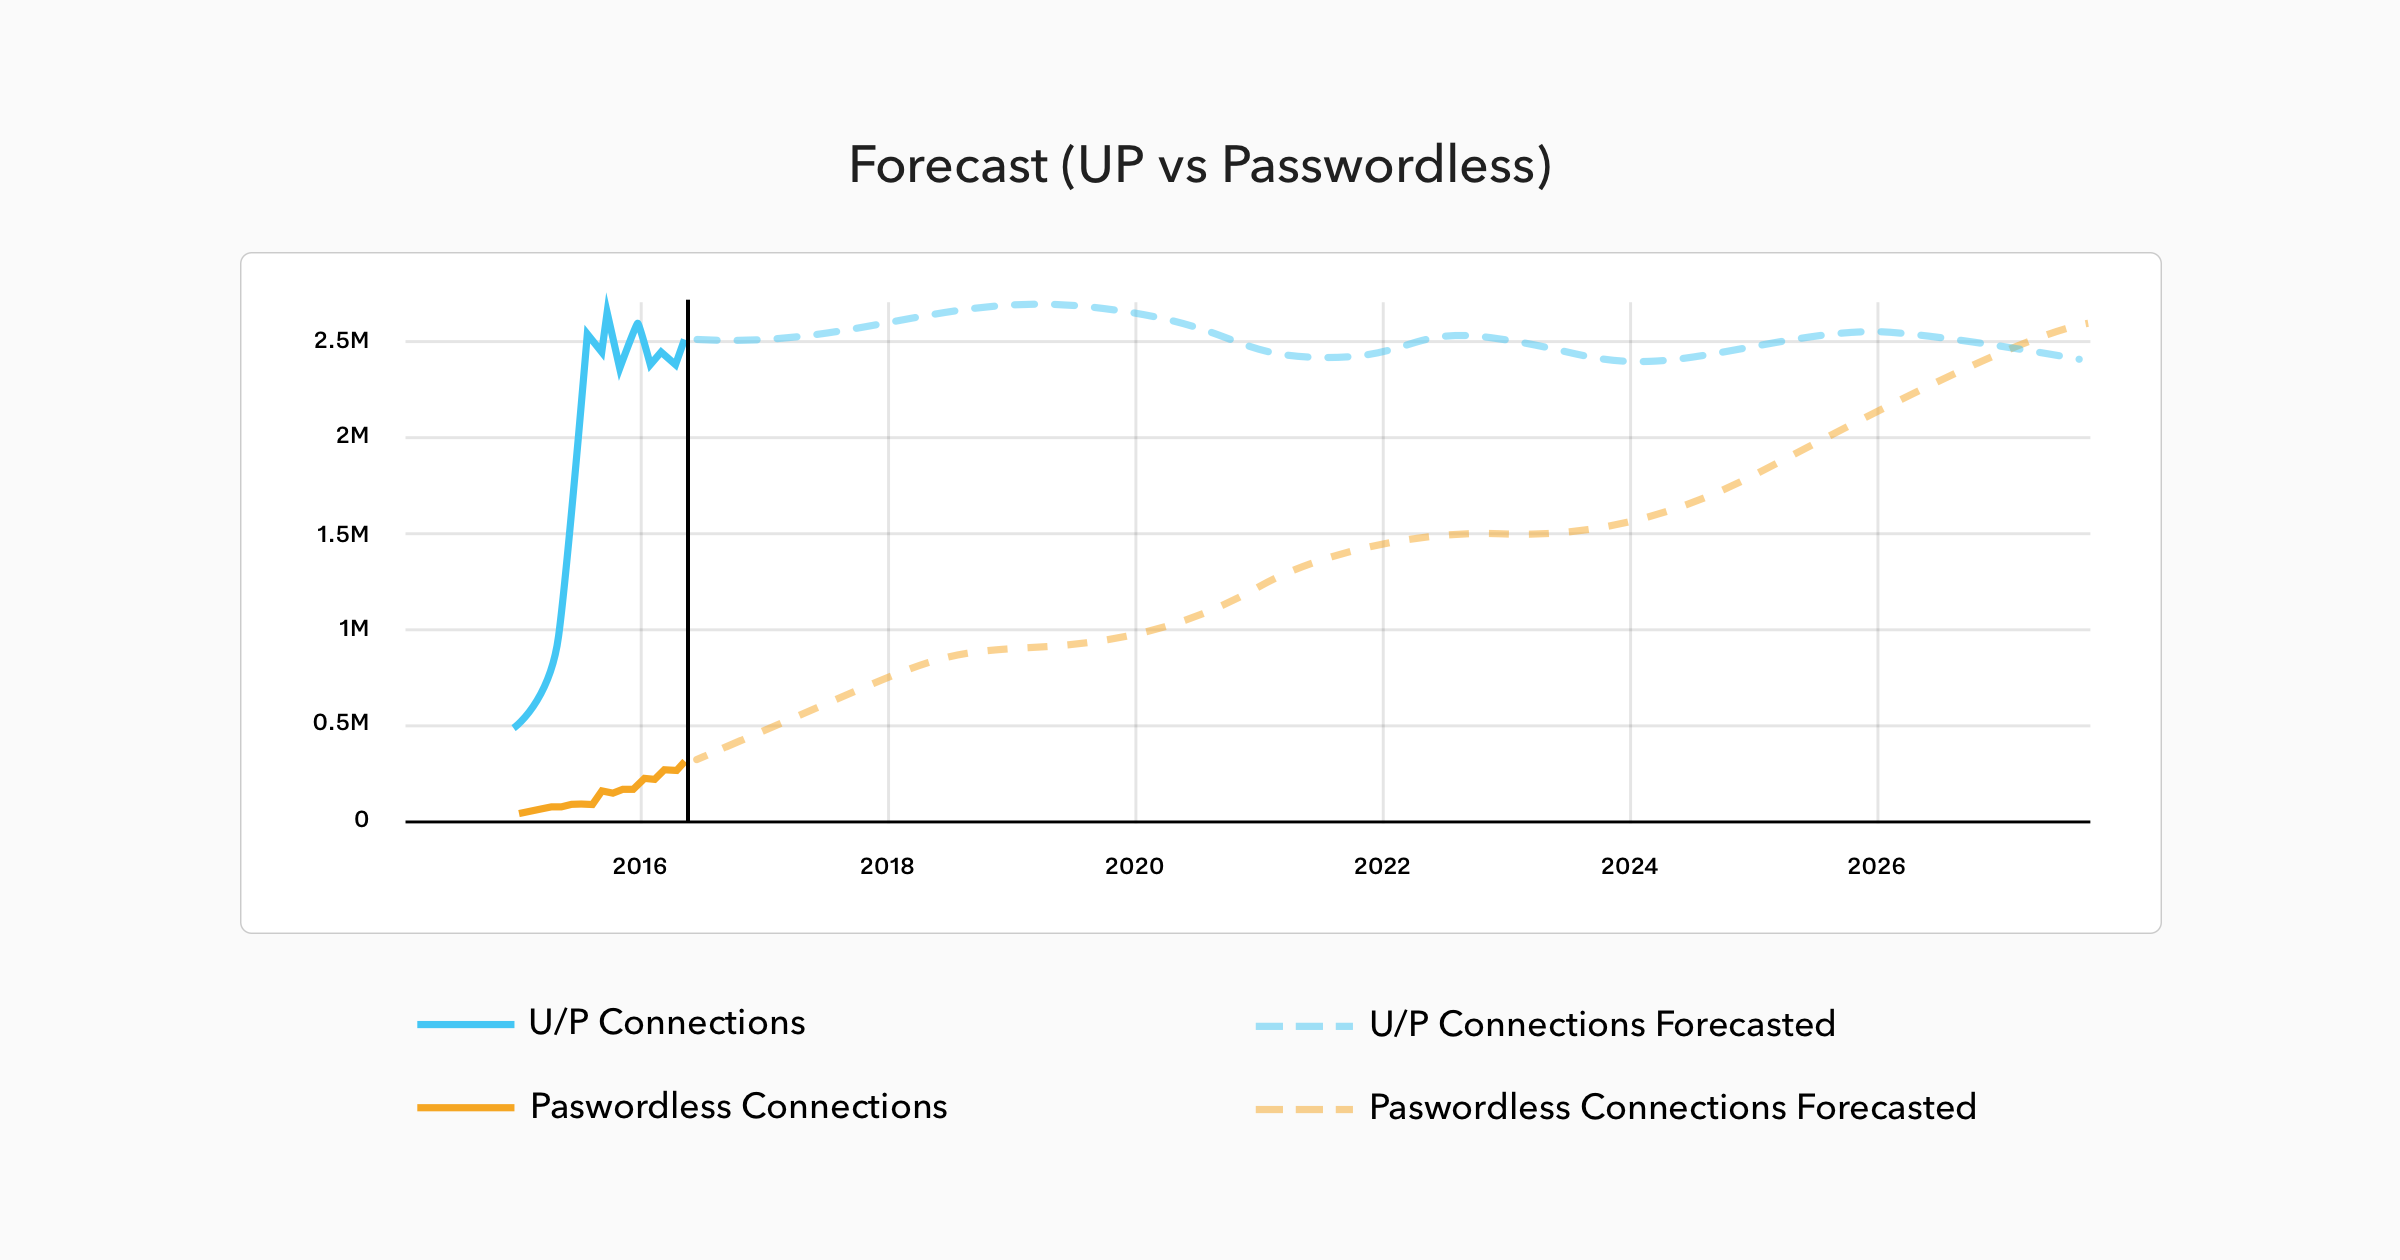 Forecast vs Passwordless